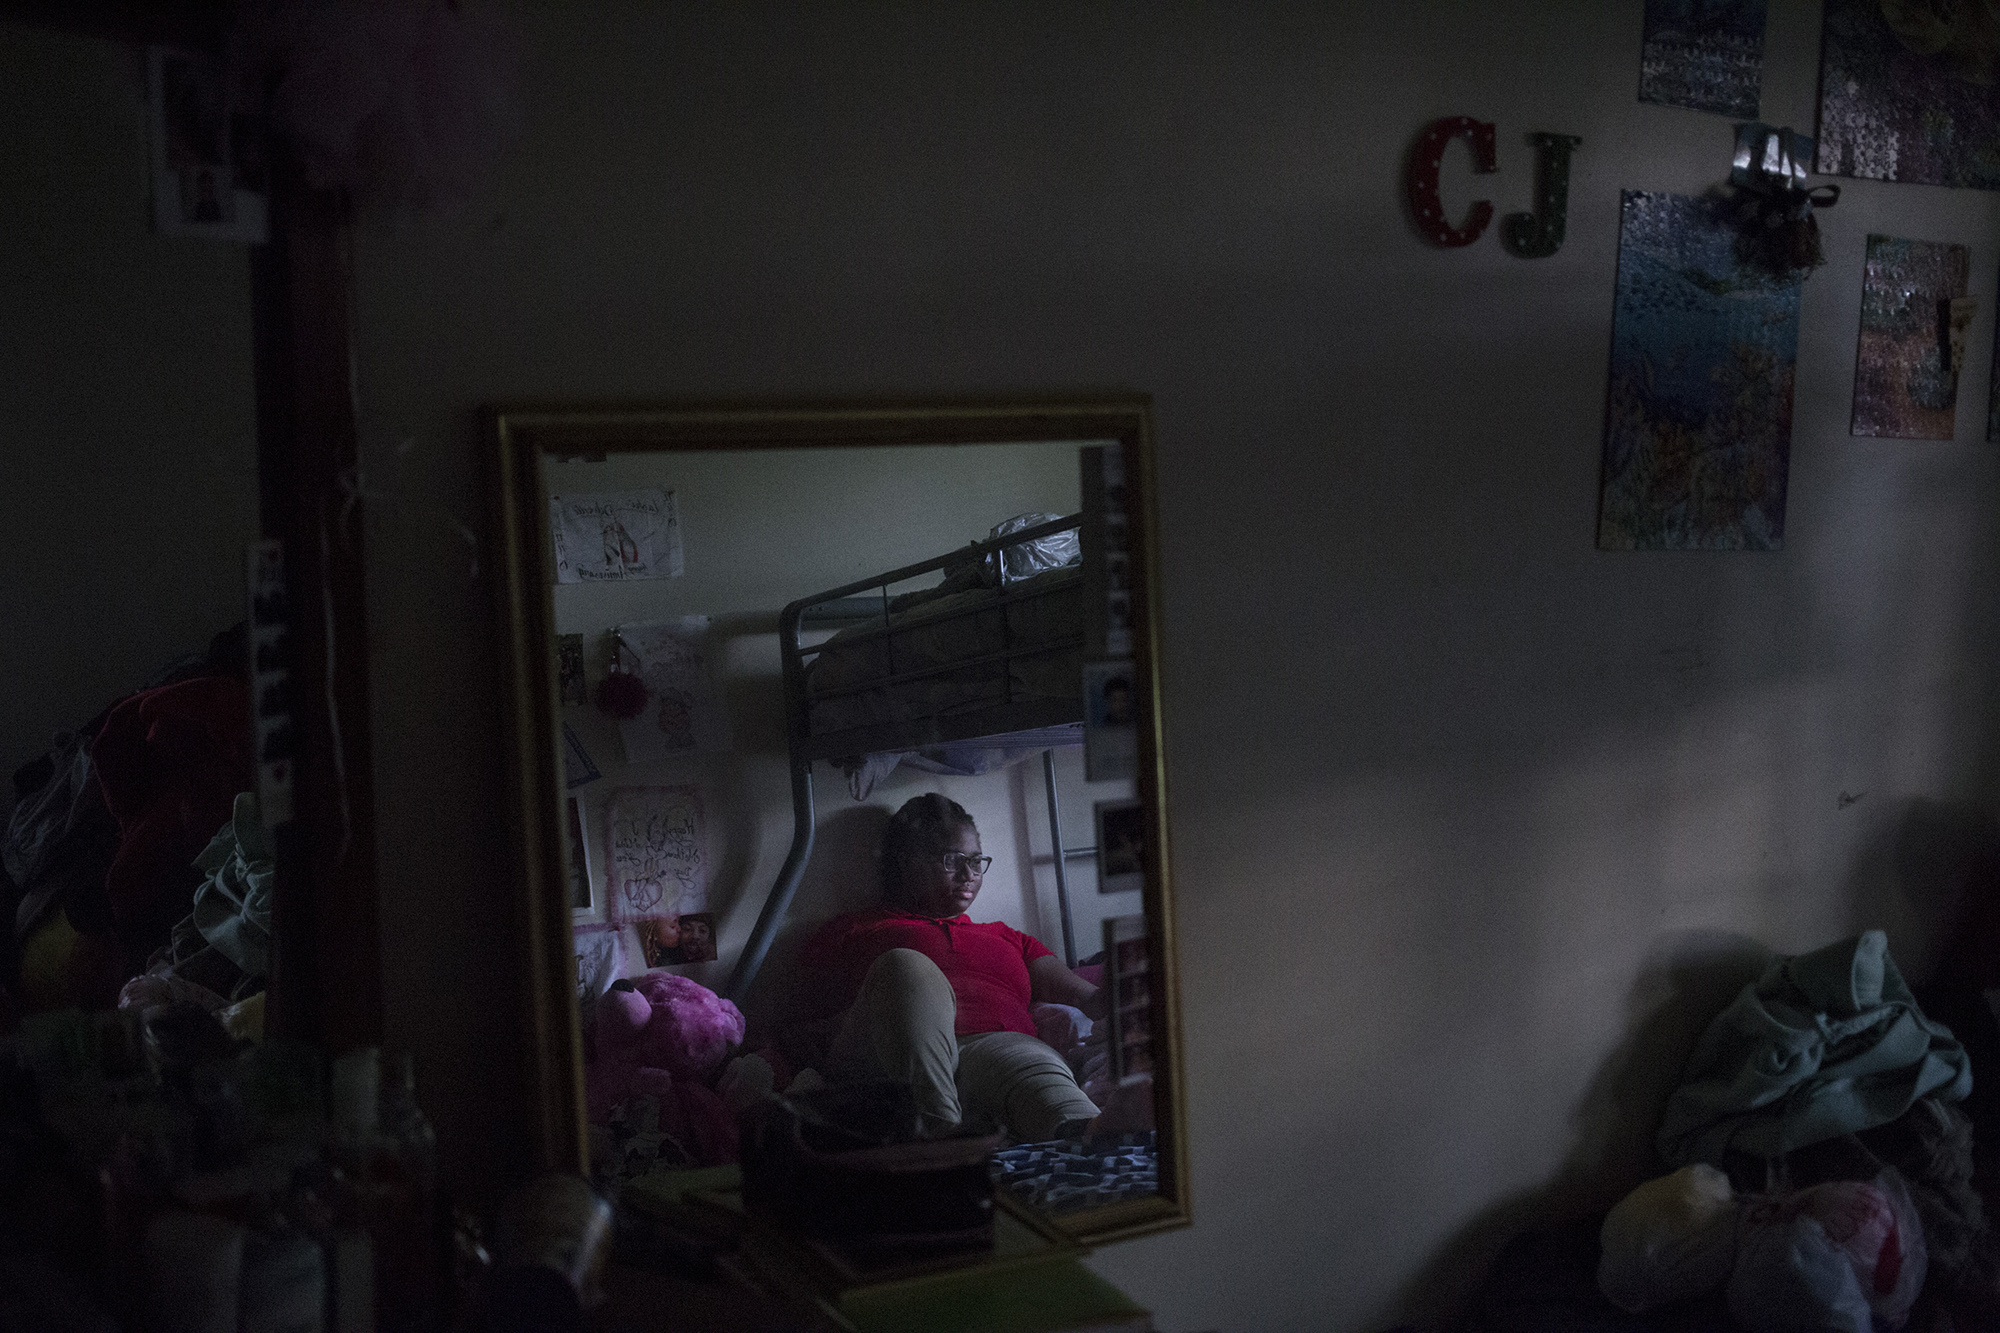 Tre'ana Taylor, 17, in the bedroom she shares with her sister and niece at her home in Springfield, Mass., on Monday, September, 11, 2017. When she was 15, Taylor became pregnant and her son, CJ, died after he was born prematurely. She has high hopes of being a mother again, after she's completed her schooling to become an OB/GYN. (Brittany Greeson/GroundTruth)